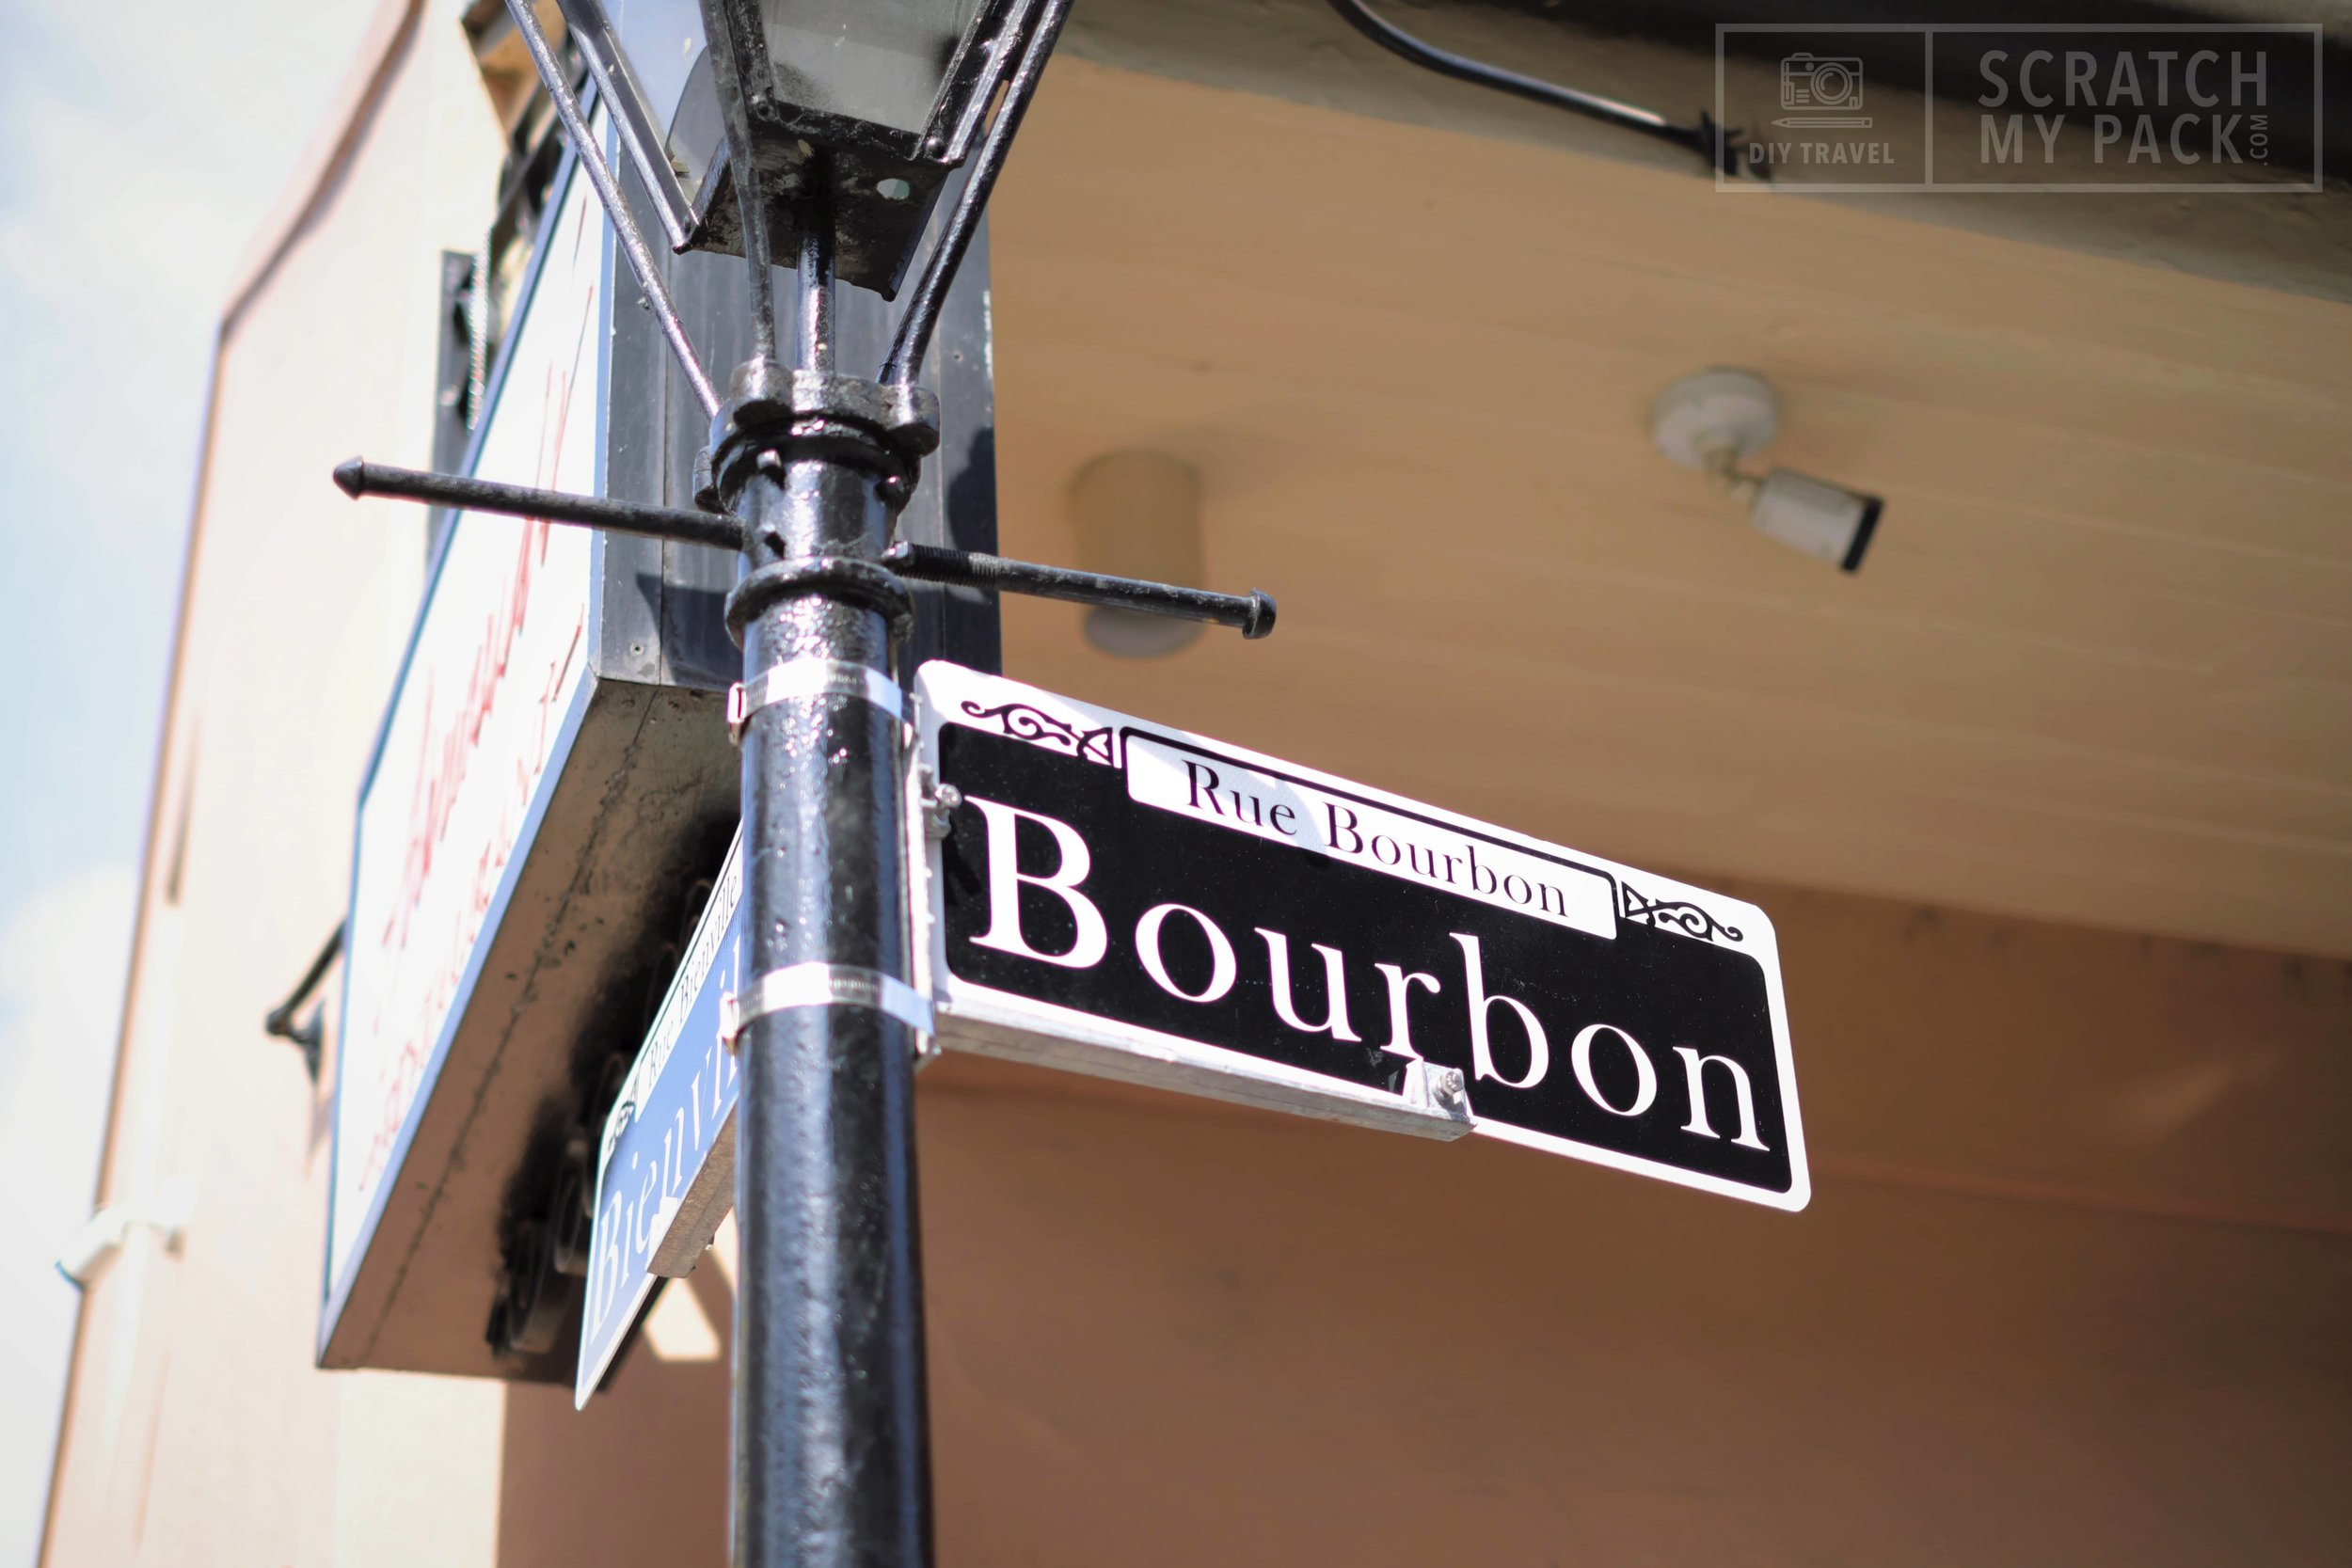 """Bourbon Street  -  Free to visit -  Largely quiet during the day, Bourbon Street comes alive at night, particularly during the French Quarter's many festivals. Most famous of these is the annual Mardi Gras celebration, when the streets teem with thousands of people. Local open container laws allow drinking alcoholic beverages on the Quarter's streets. The most heavily visited section of Bourbon Street is """"upper Bourbon Street"""", known for its bars, restaurants, souvenir shops, and strip clubs. """"Lower Bourbon Street"""" caters to New Orleans' thriving gay community, featuring the city's largest gay nightclub, the Bourbon Pub."""